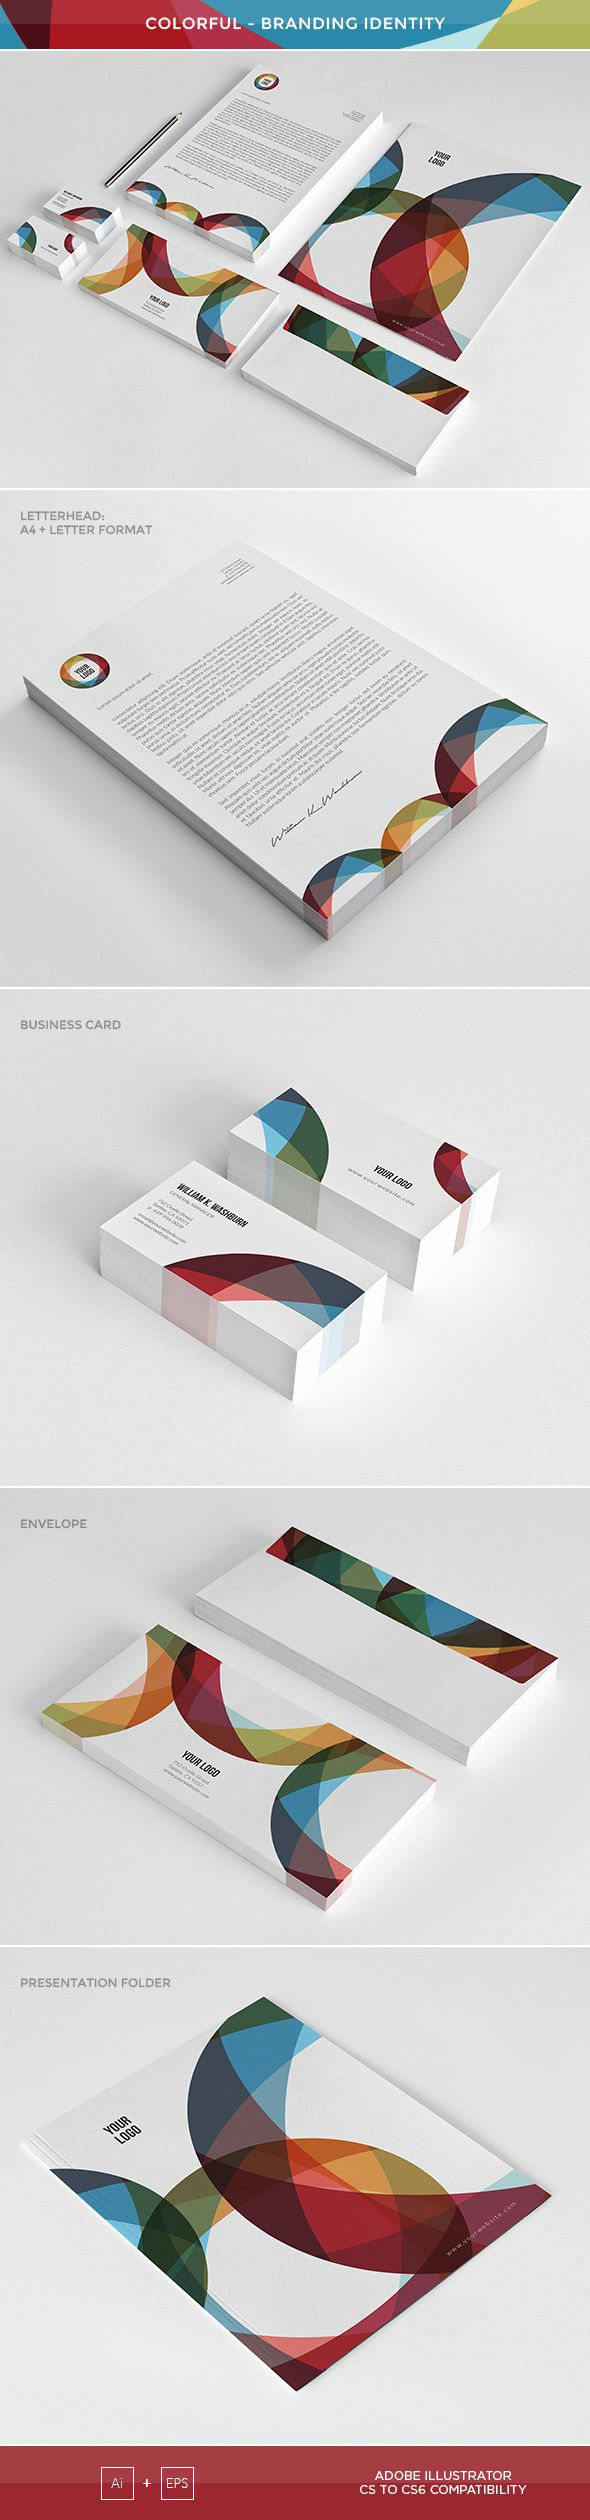 Colorful Brand Identity Template Screenshot 1